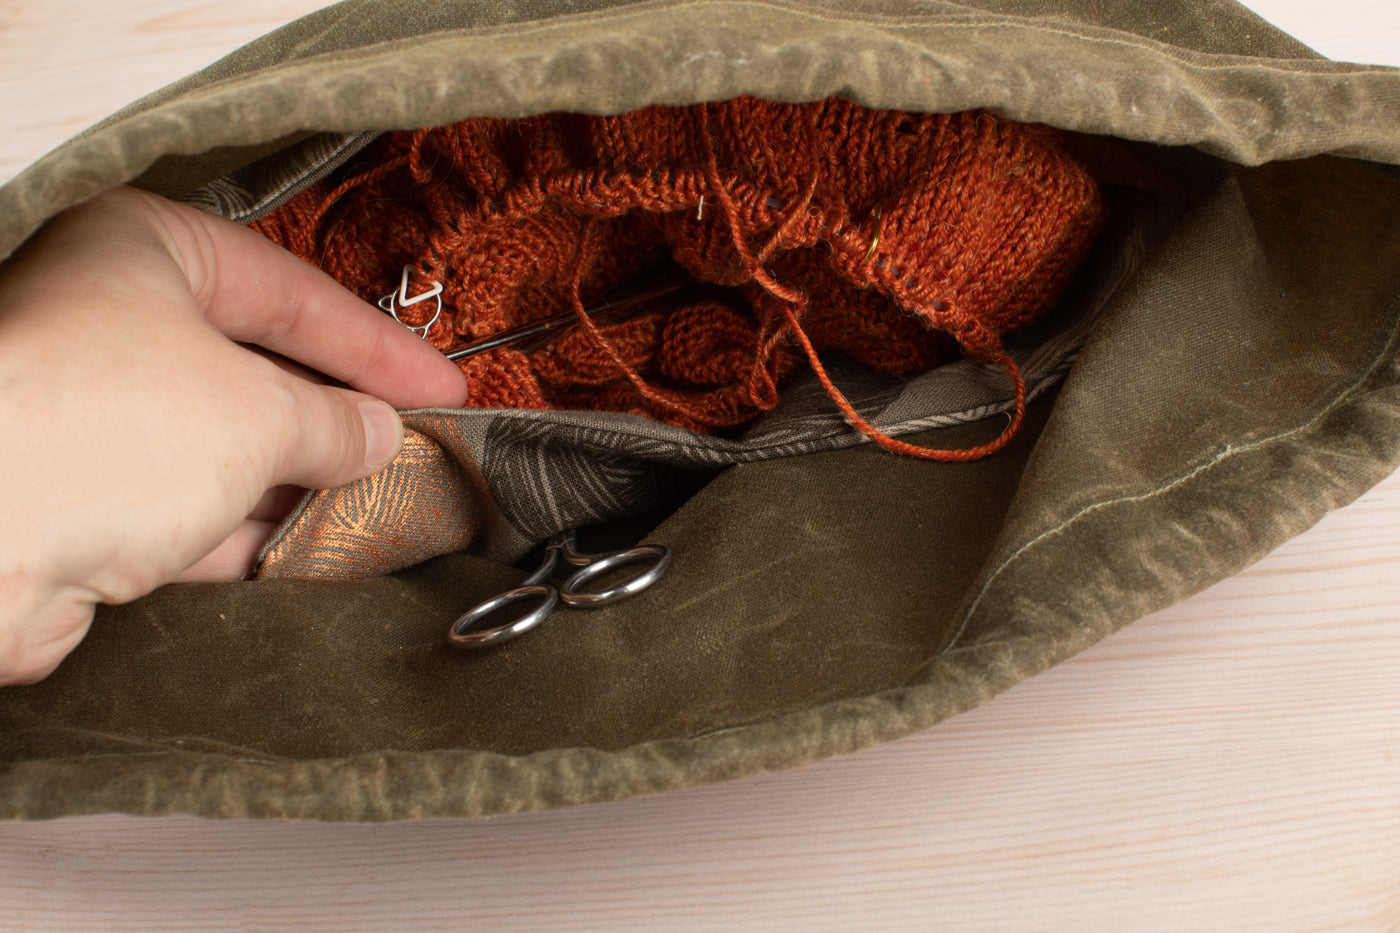 This is an image of the canvas bag with scissors and yarn inside of it.